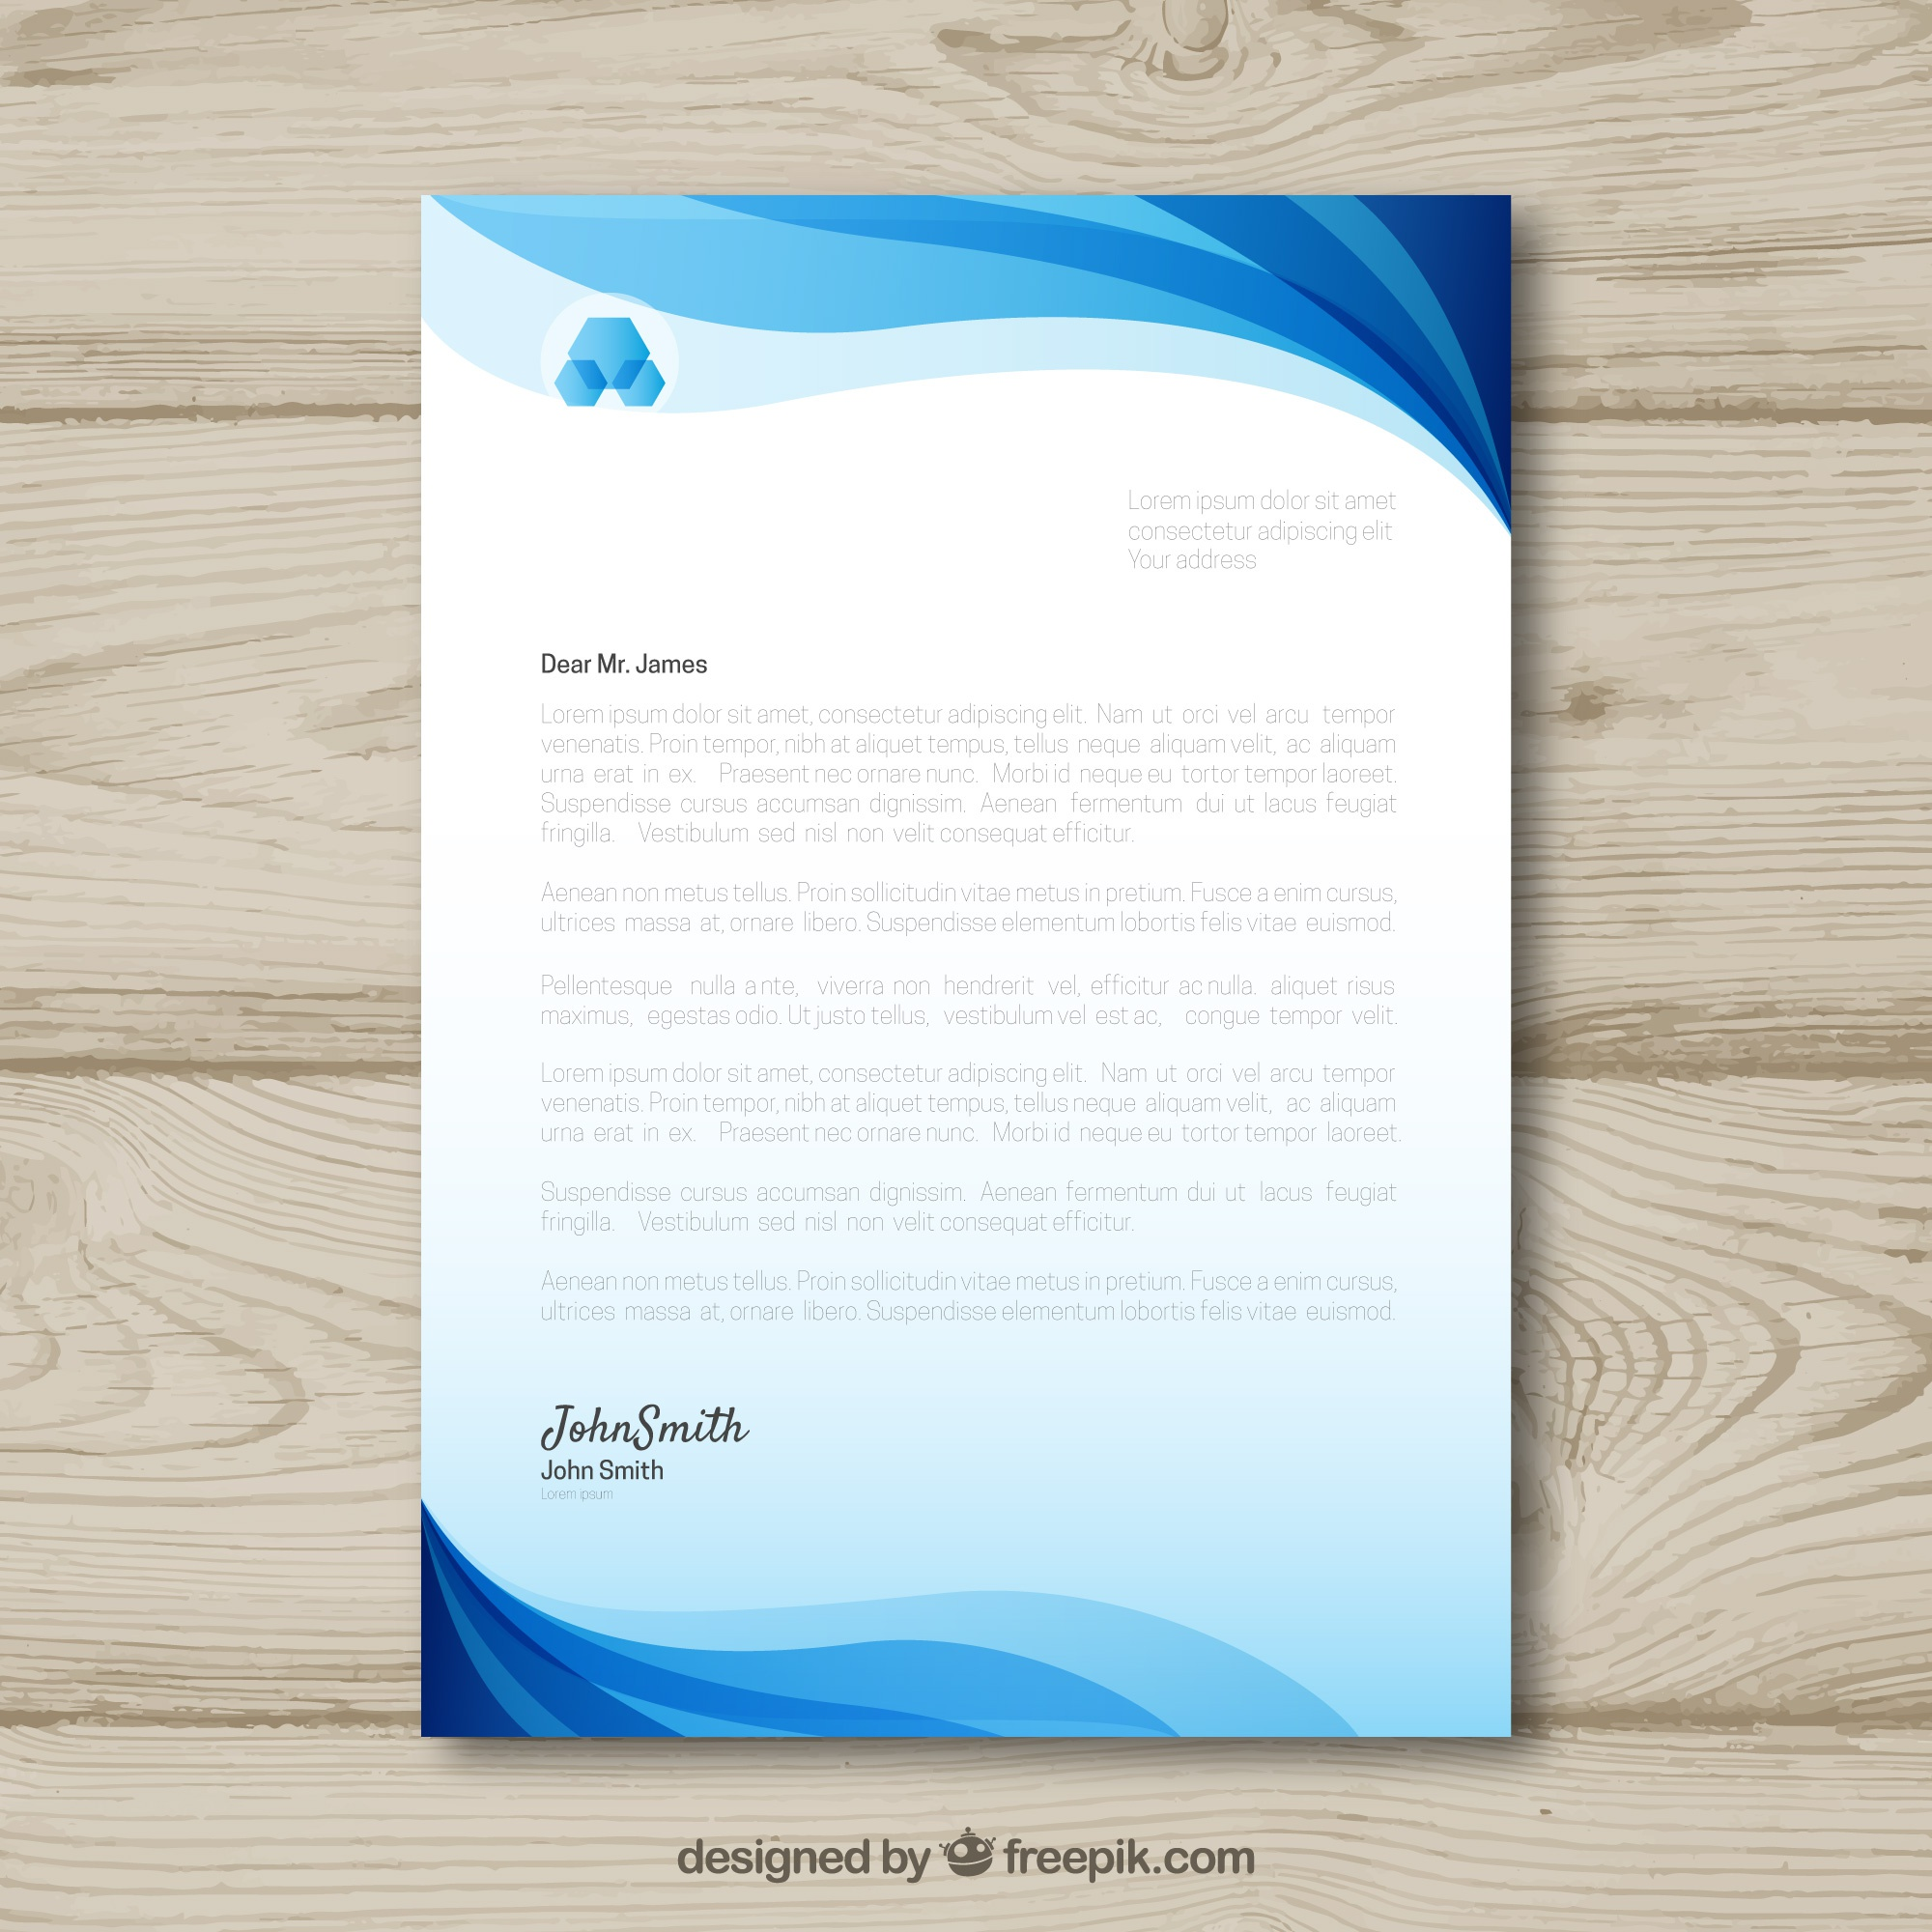 Letterhead template in gradient style